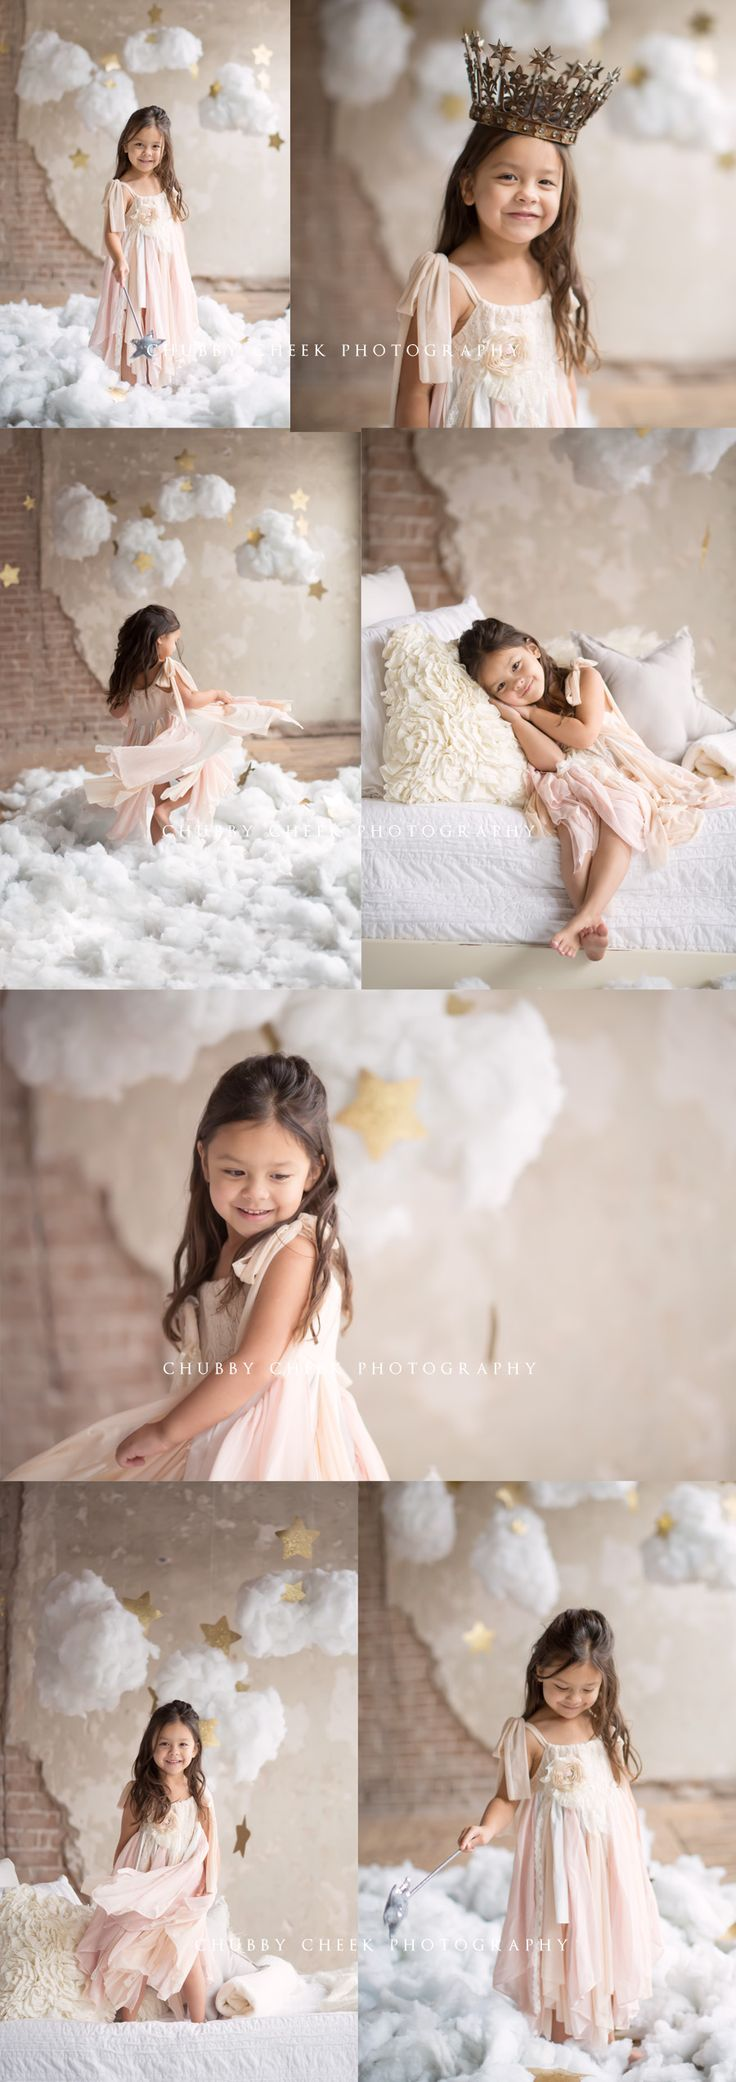 we needed a change of pace and i realized i hadn't blogged this little beauty and her head in the clouds mini session from back in MARCH YALL!!!!!  i mean i was so overwhelmed last year...heck the last few years have overwhelmed me which is kinda funny bc after almost 8 years you would think id…